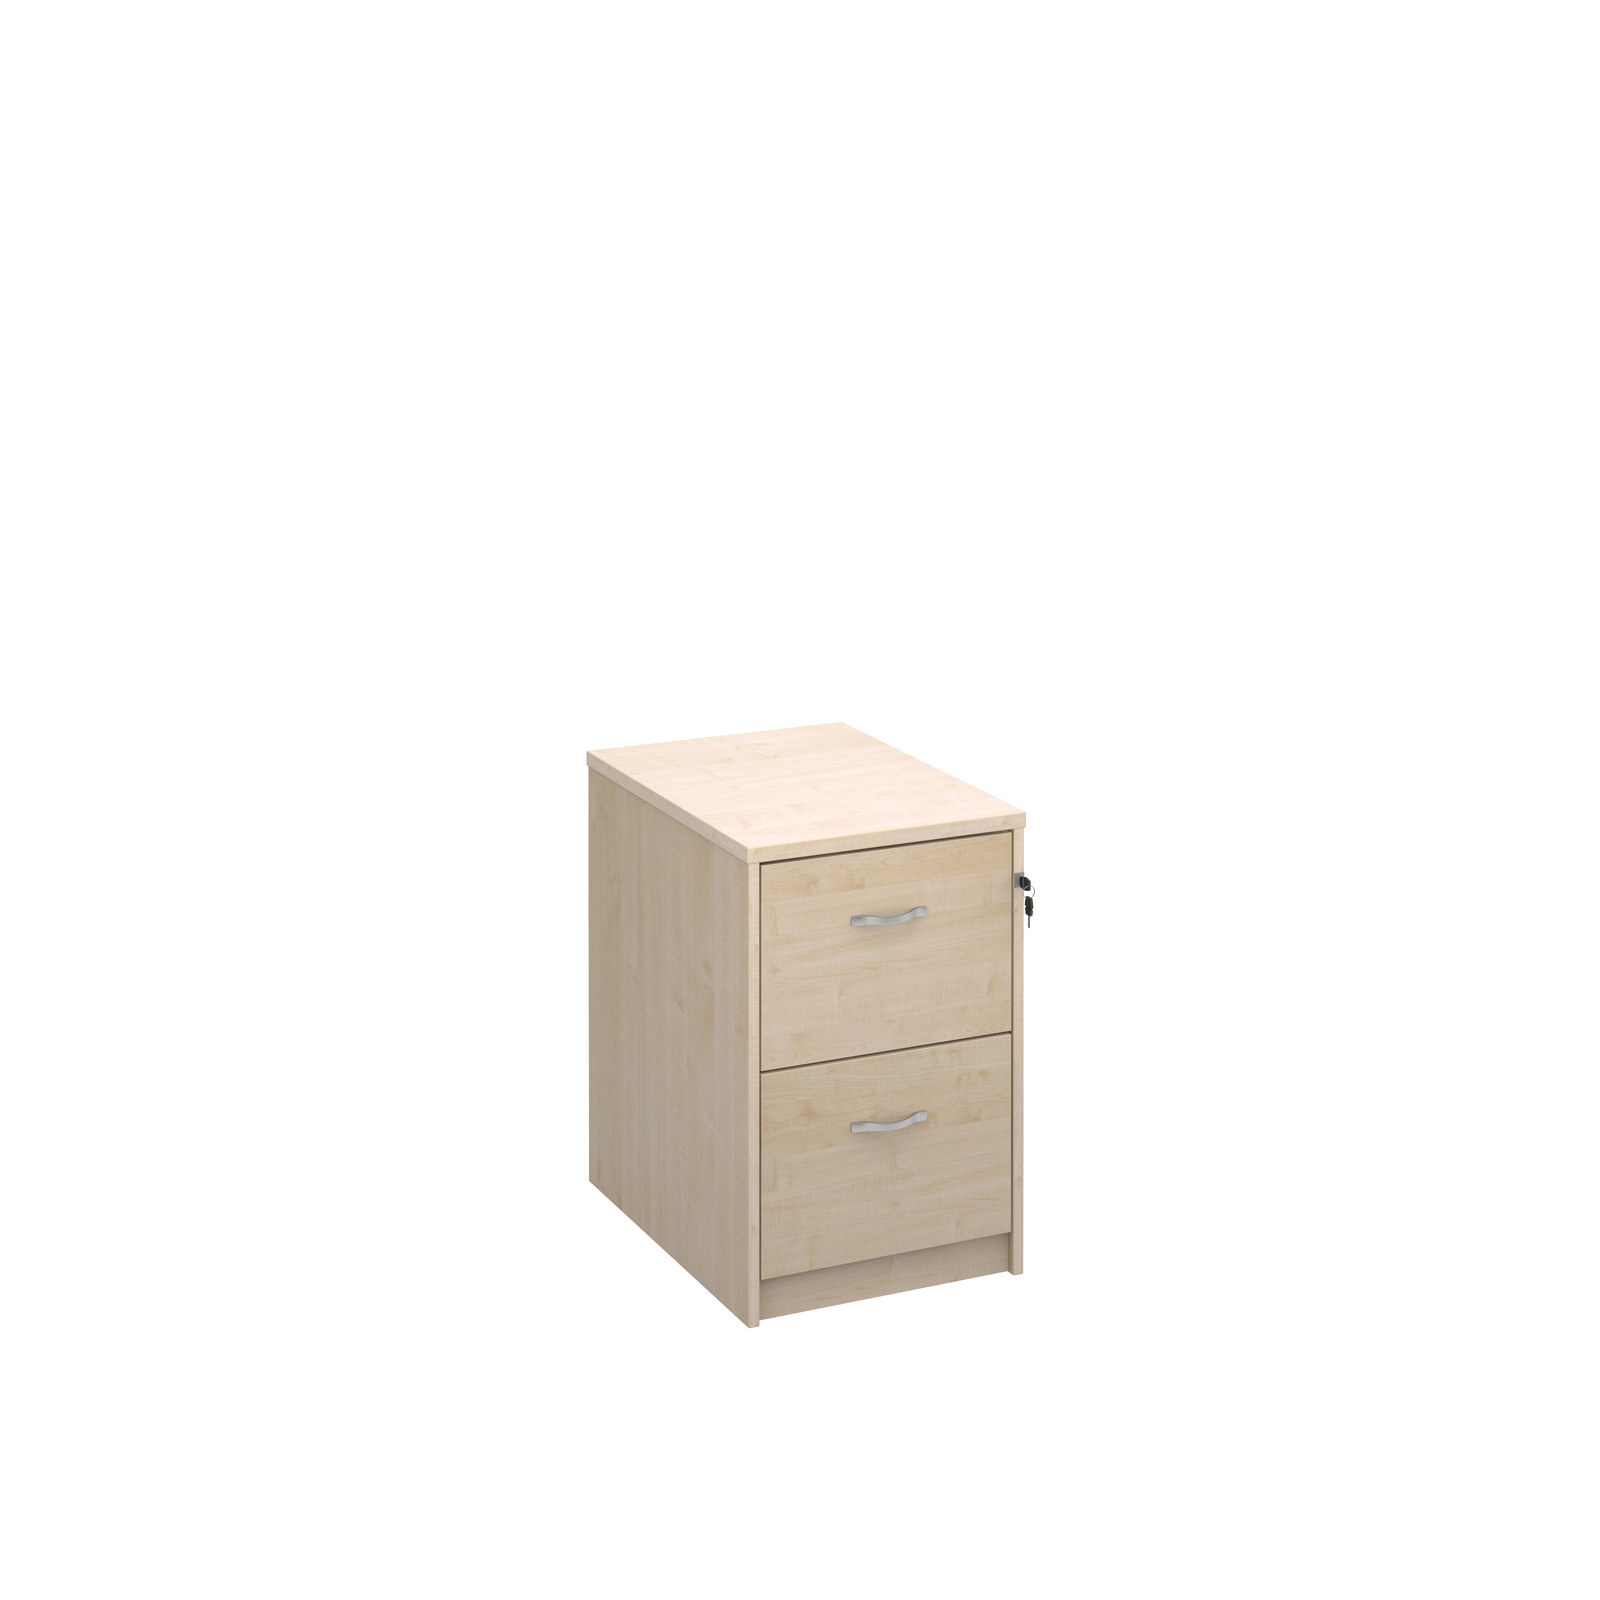 Wood Wooden 2 drawer filing cabinet with silver handles 730mm high - maple